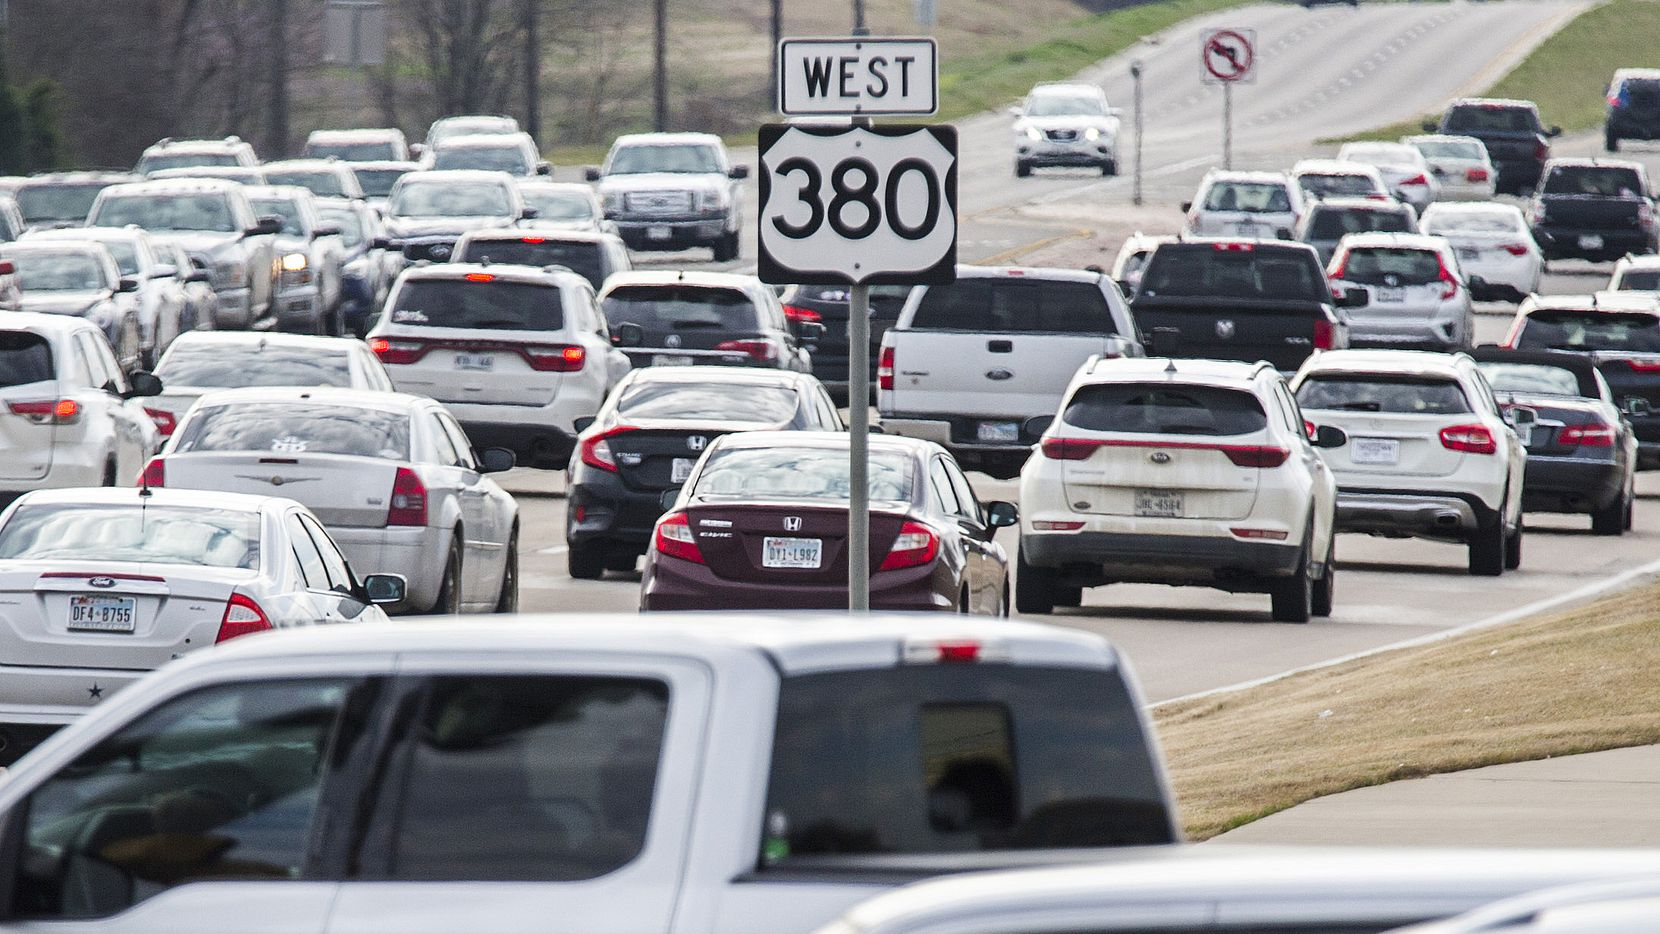 Traffic backs up at evening rush hour on U.S. Highway 380 near Lake Forest Drive in McKinney.  The Texas Department of Transportation is unveiling plans for a makeover of the over-crowded roadway, but ground likely won't be broken for at least five years.